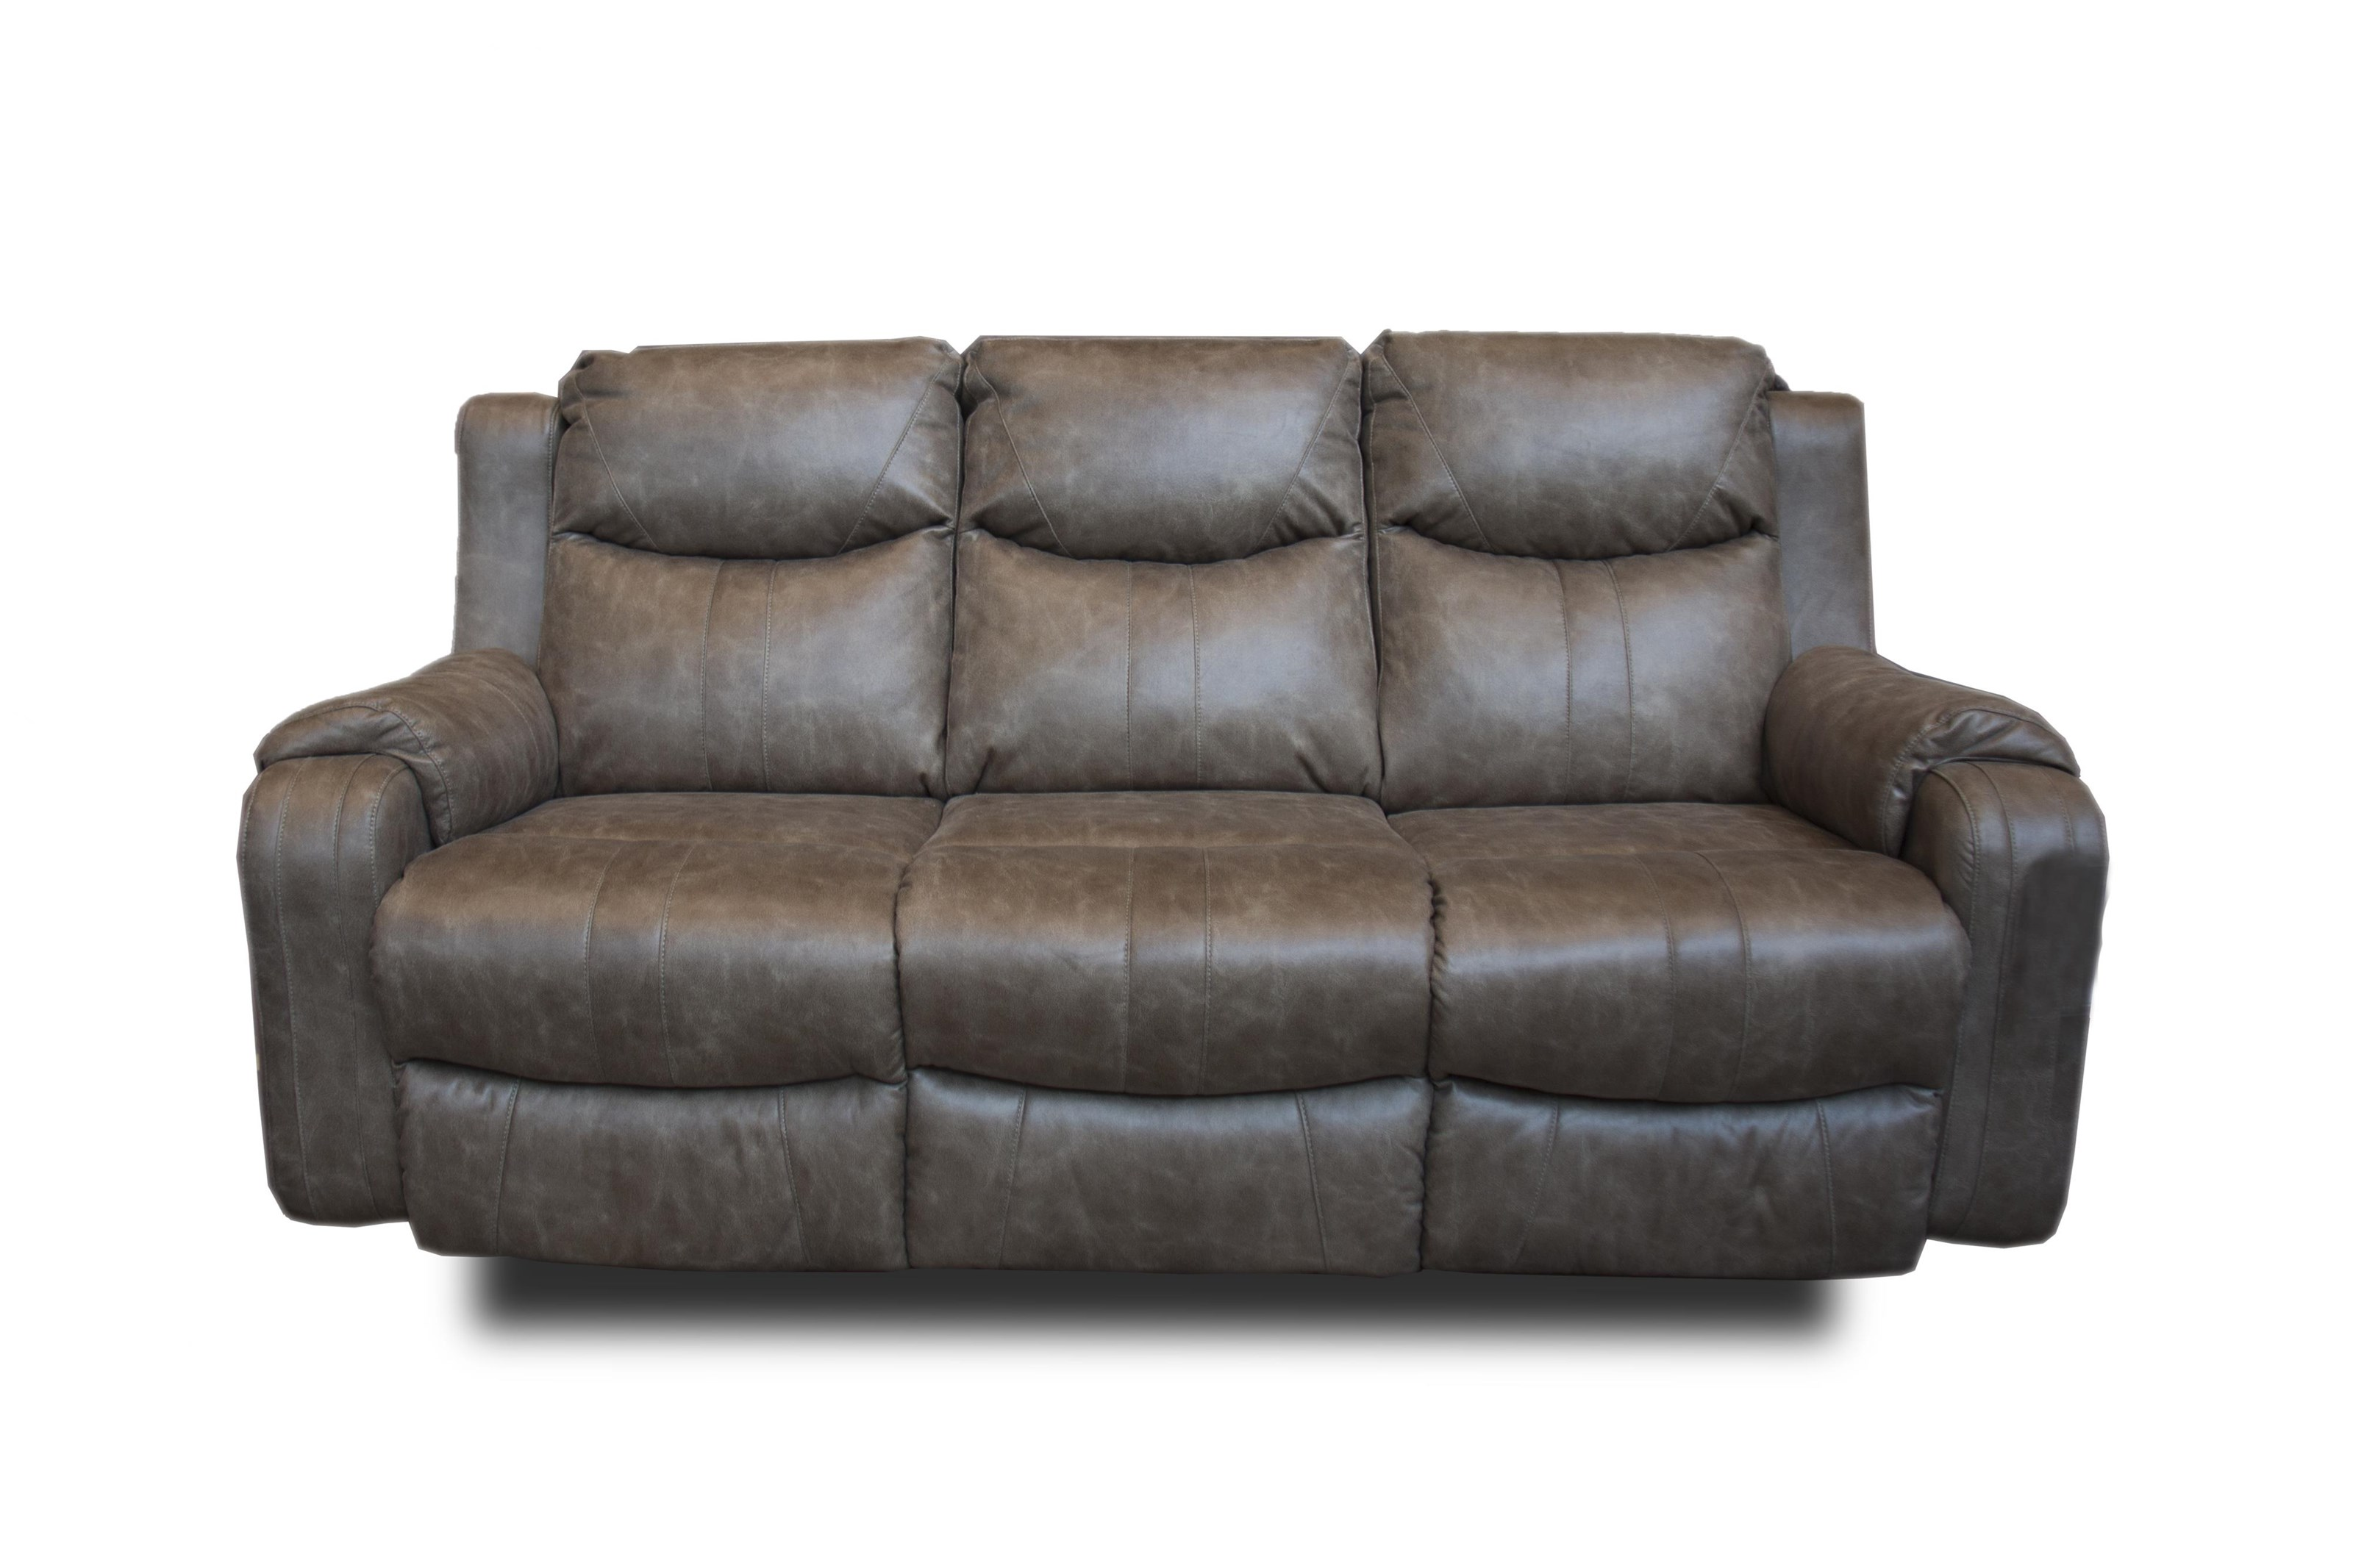 Southern motion marvel 881 31 186 16 double reclining for Sofa sofa showroom